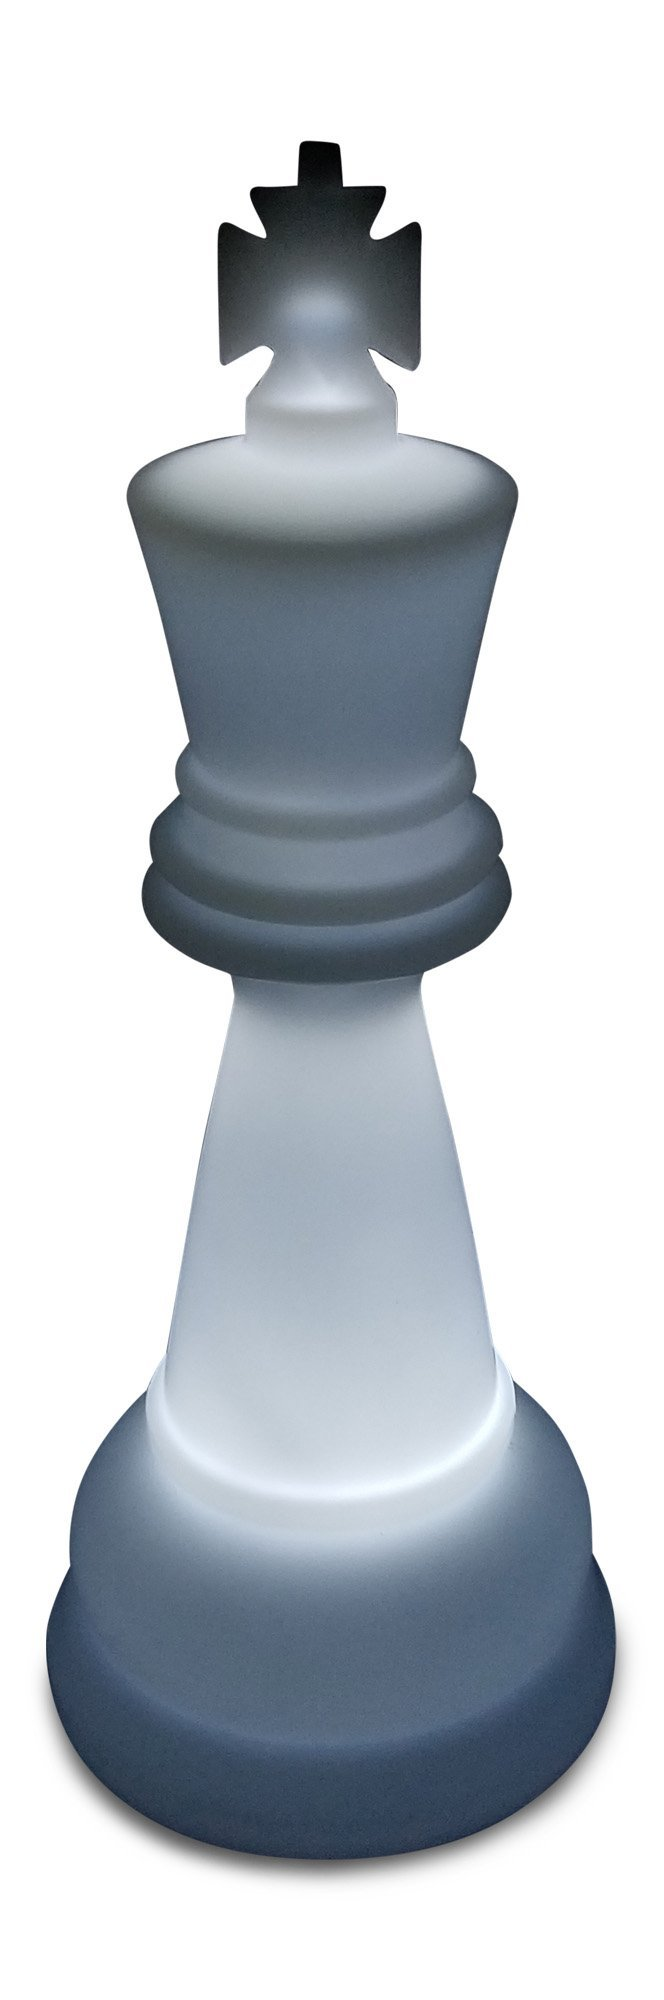 MegaChess 38 Inch Premium Plastic King Light-Up Giant Chess Piece - White | Default Title | GiantChessUSA